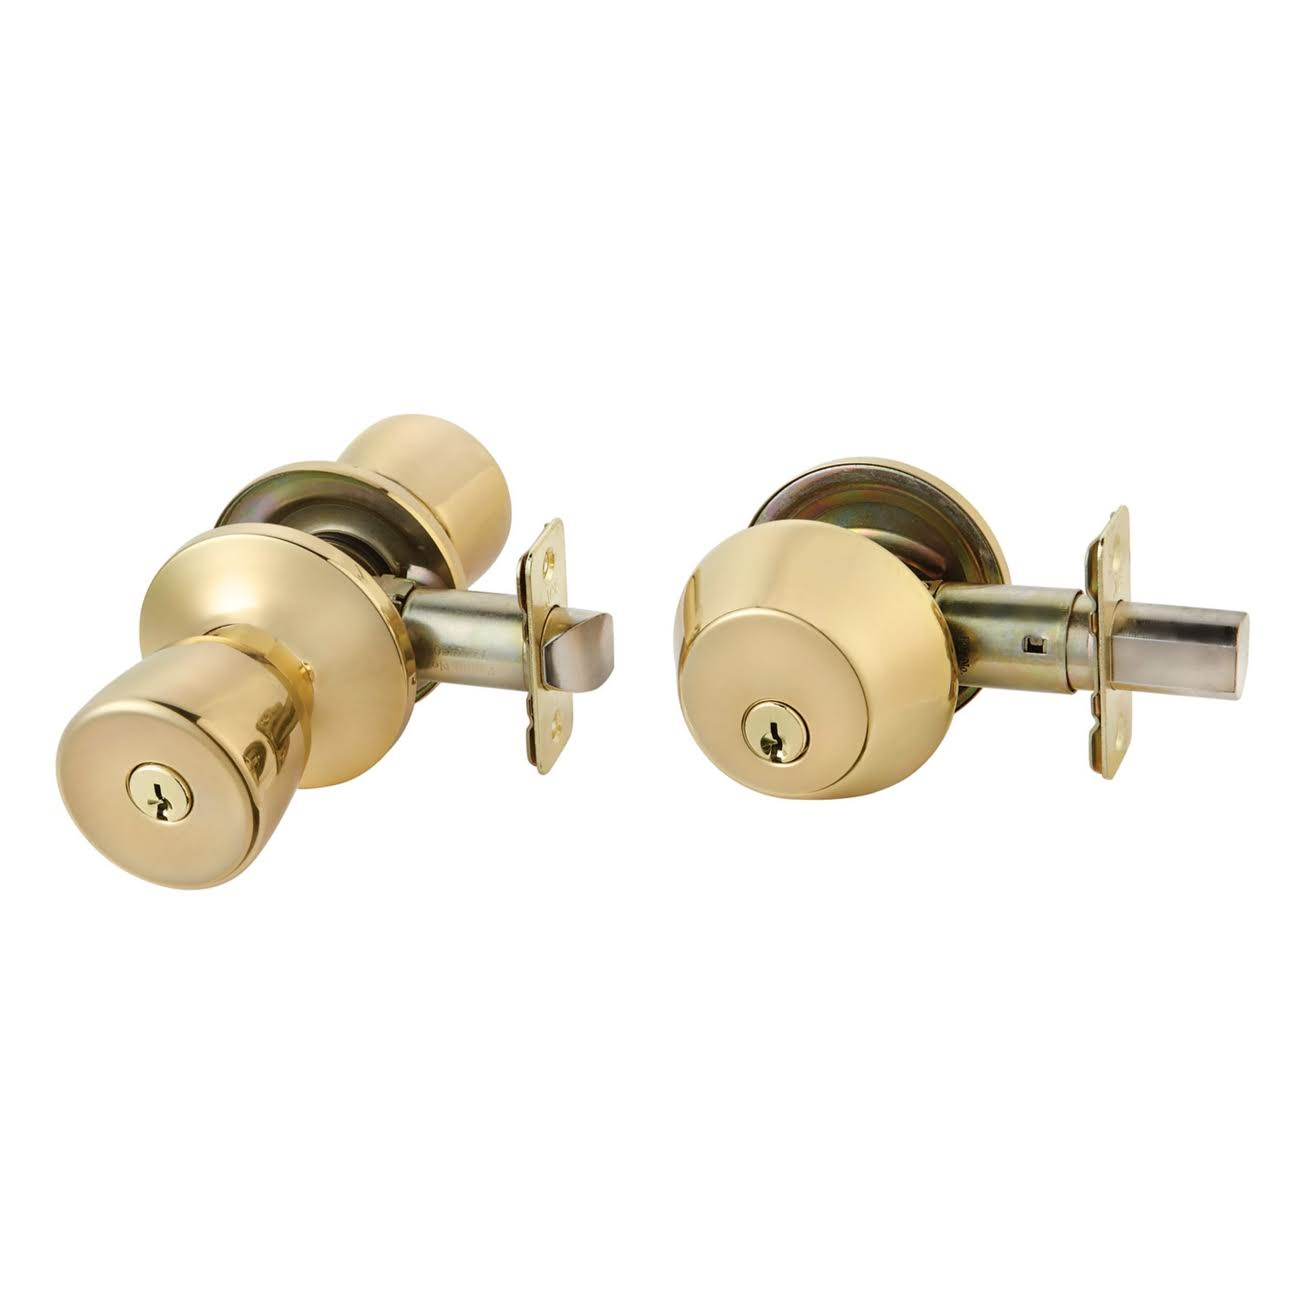 Ace Tulip Style Entry Lock & Single Cylinder Deadbolt